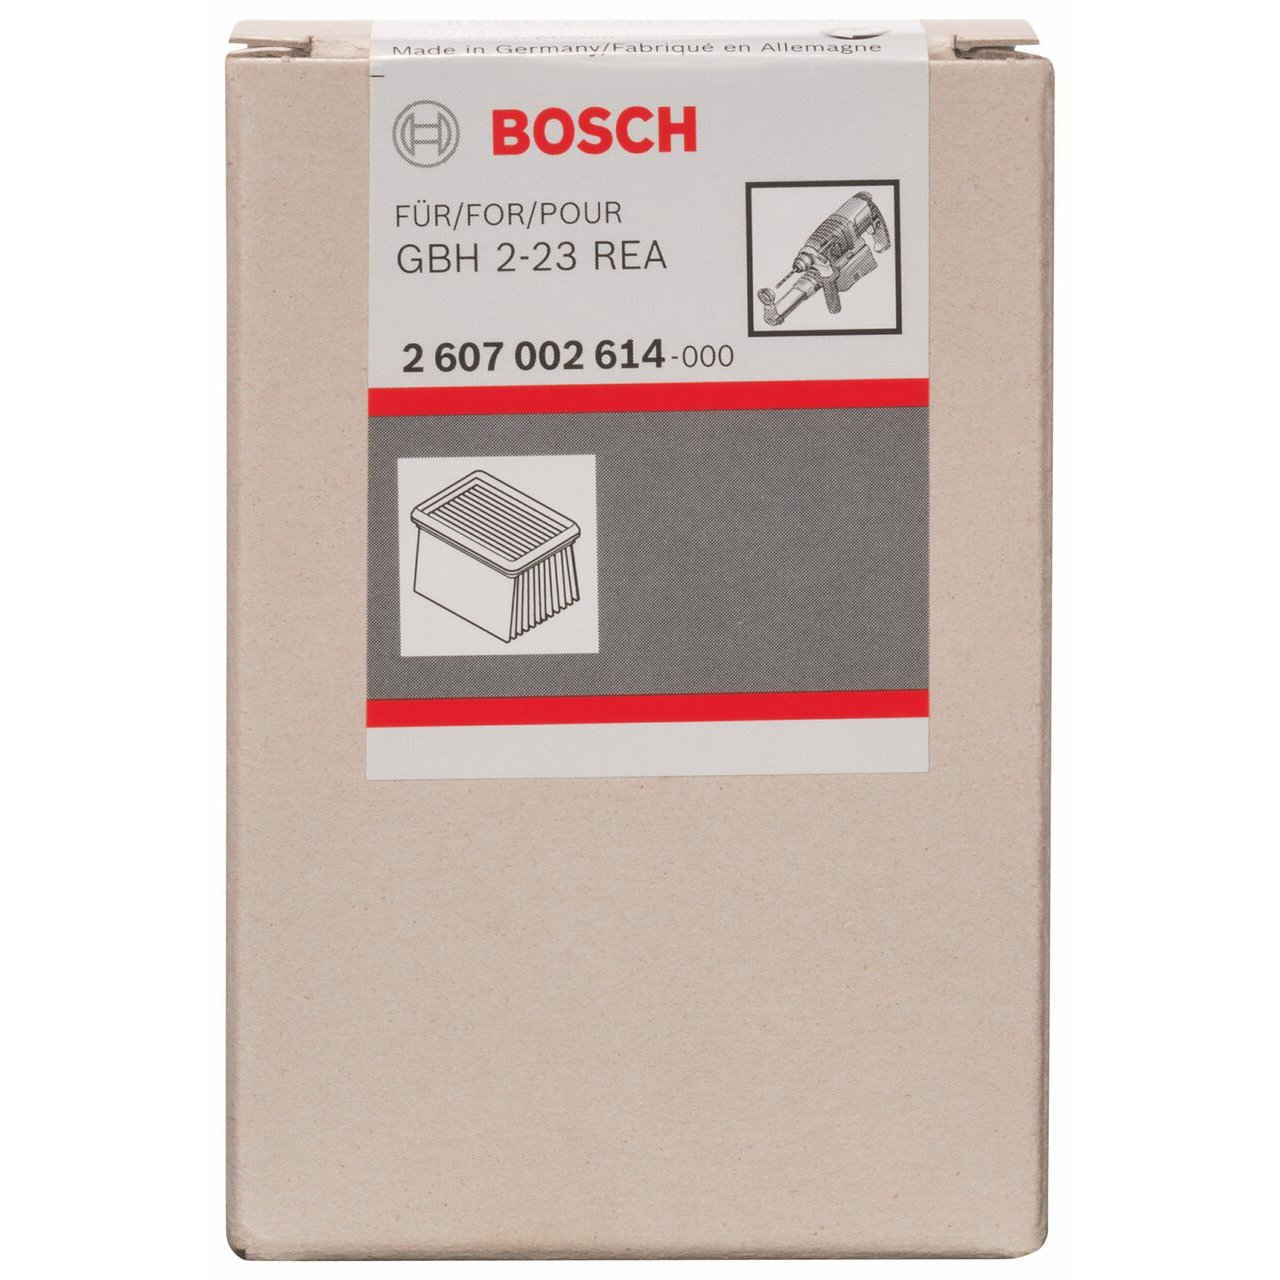 Bosch 2607002614 Filter for Gbh 2-23 Rea Professional by Bosch Professional